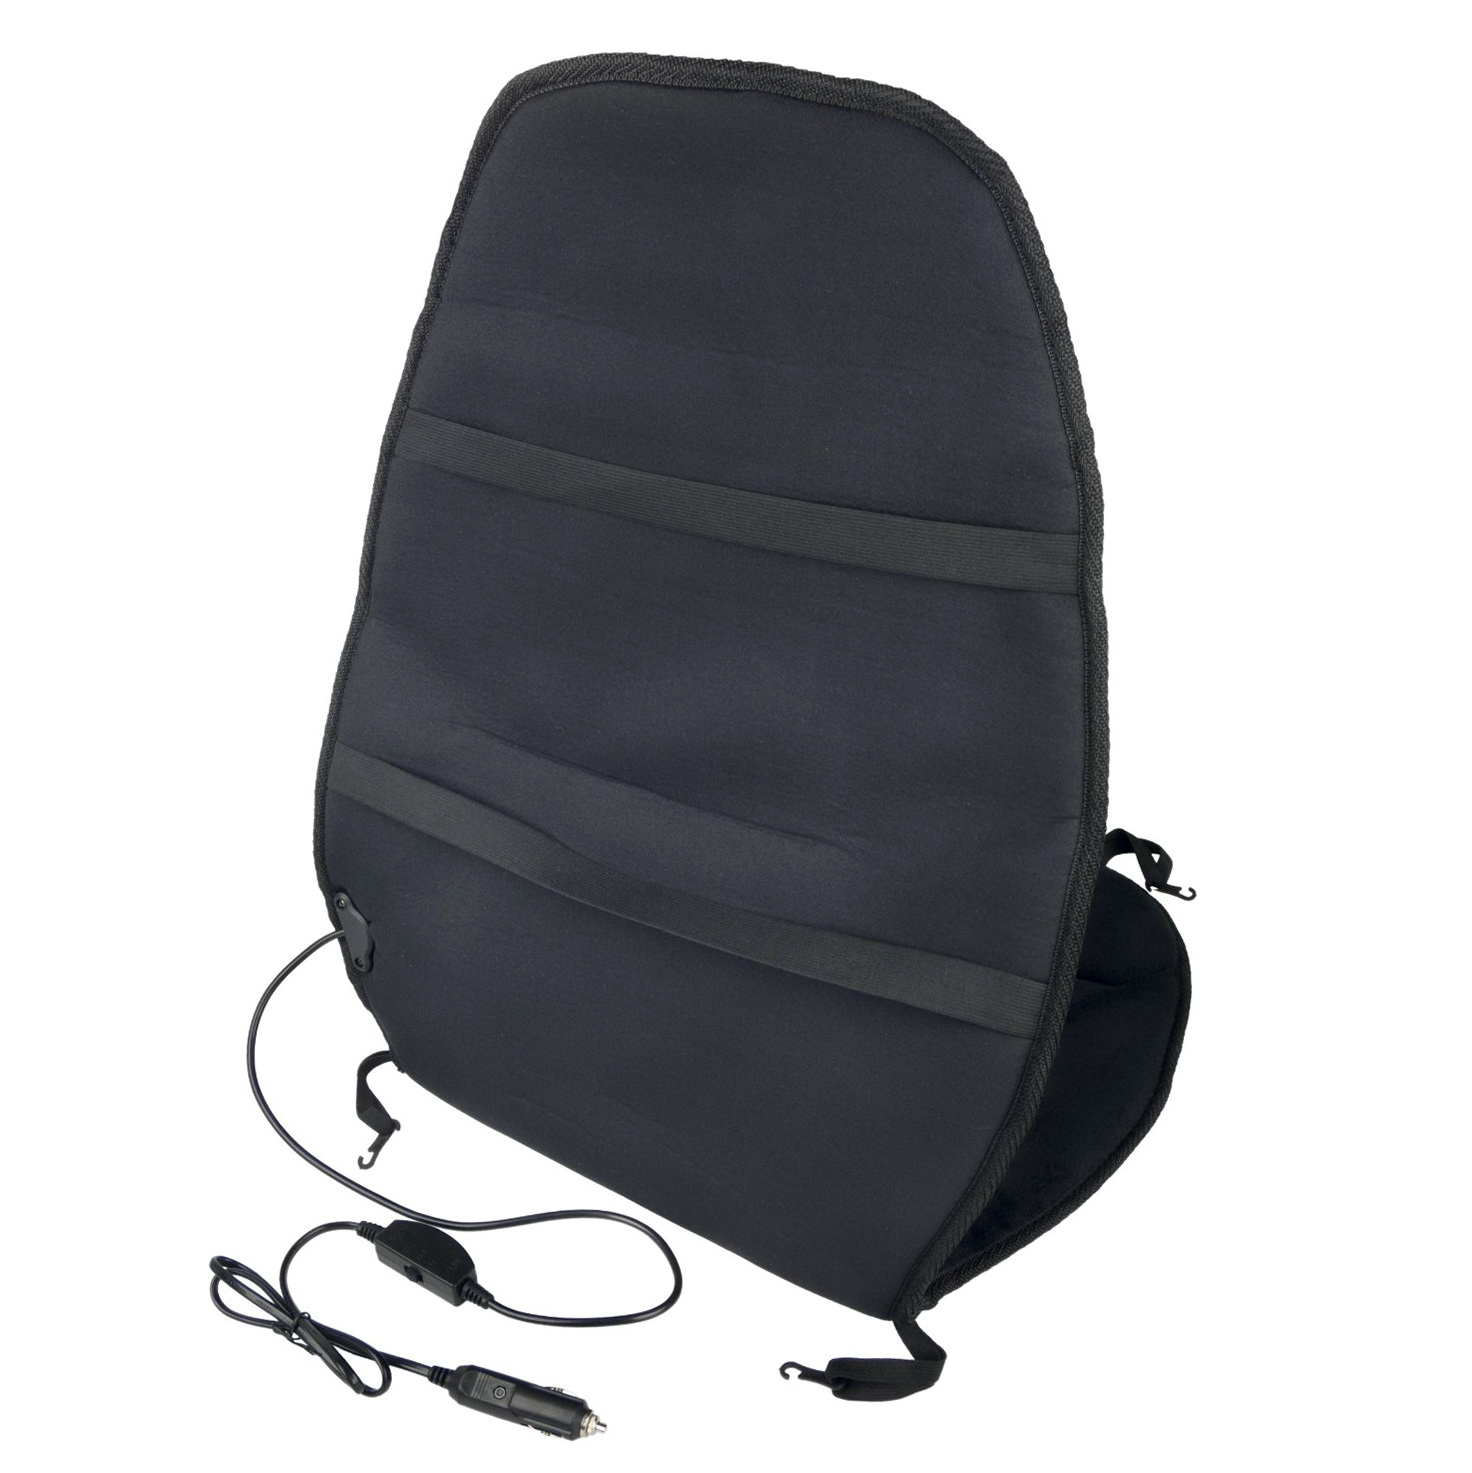 Heated Car Seat Cushion With Lumbar Support